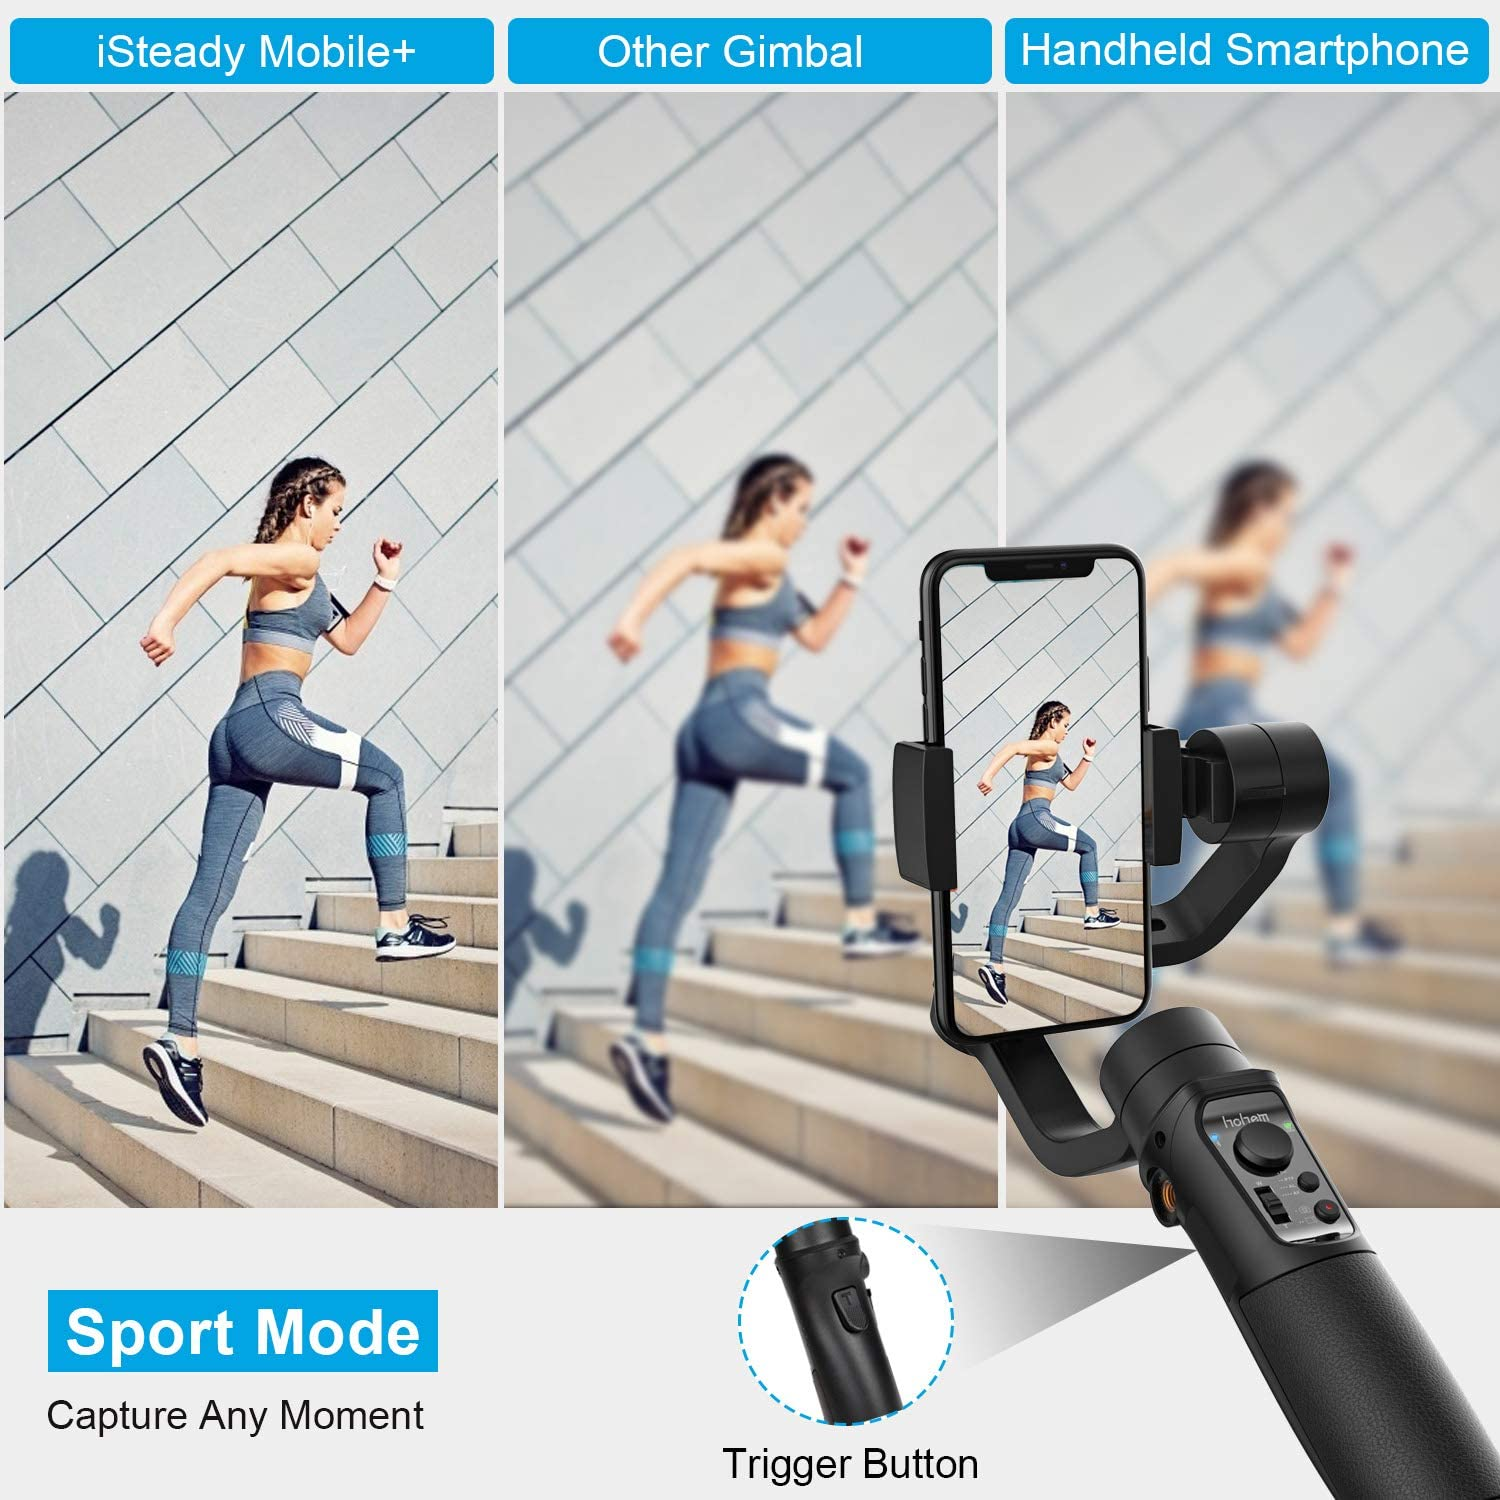 Youtuber 2019 New Model Hohem iSteady Mobile Plus Smartphone Gimbal,Smartphone Stabilizer for iPhone 11//11 Pro//XS//XS MAX//XR//8,Smartphone Gimble for Galaxy S10//Plus//S9,Designed for Vlog